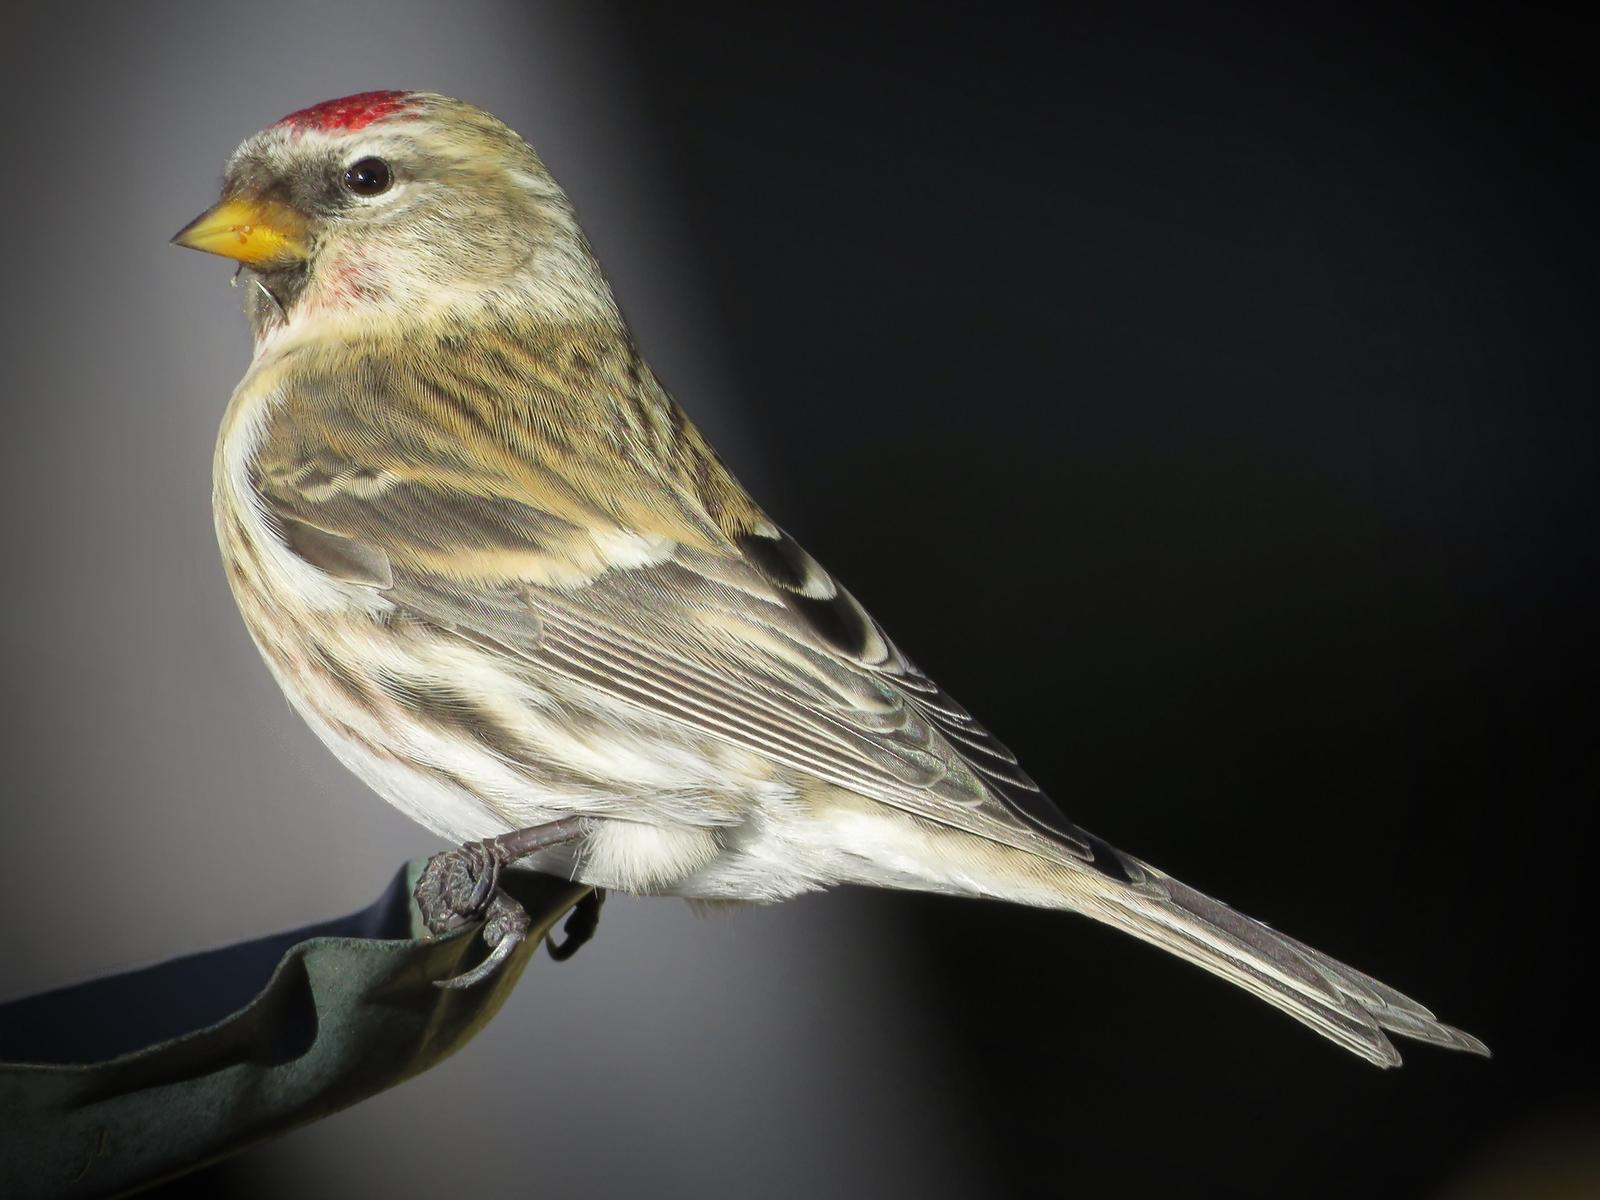 Common Redpoll Photo by Bob Neugebauer